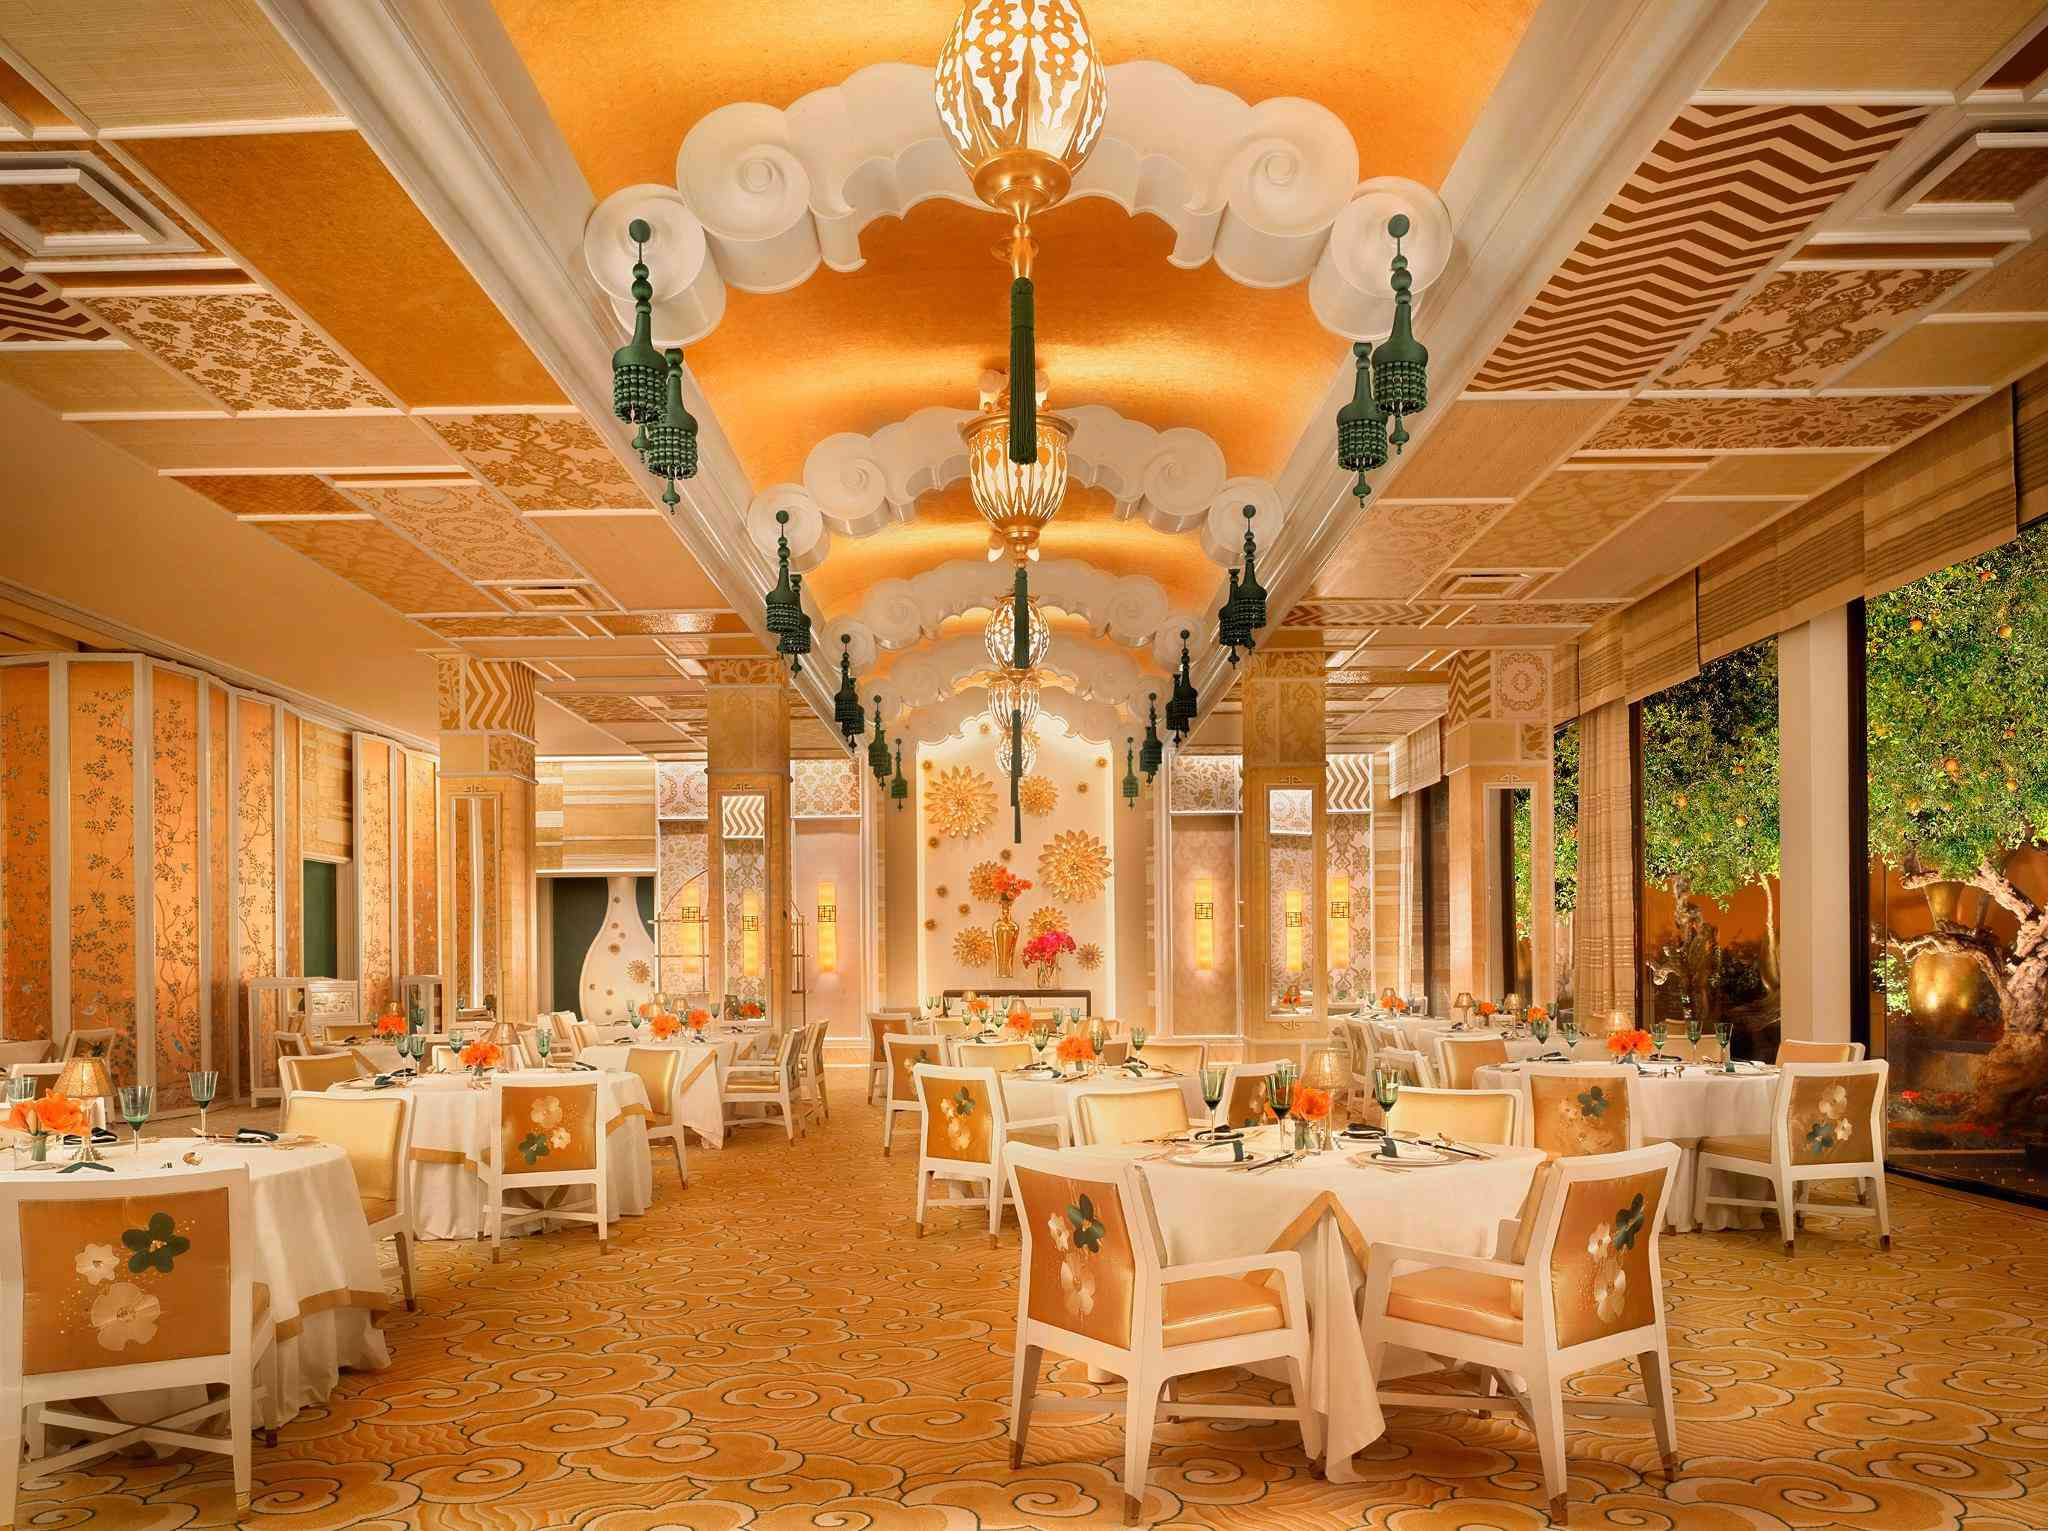 Interior dining room of Wing Lei decorated in gold and floral accents